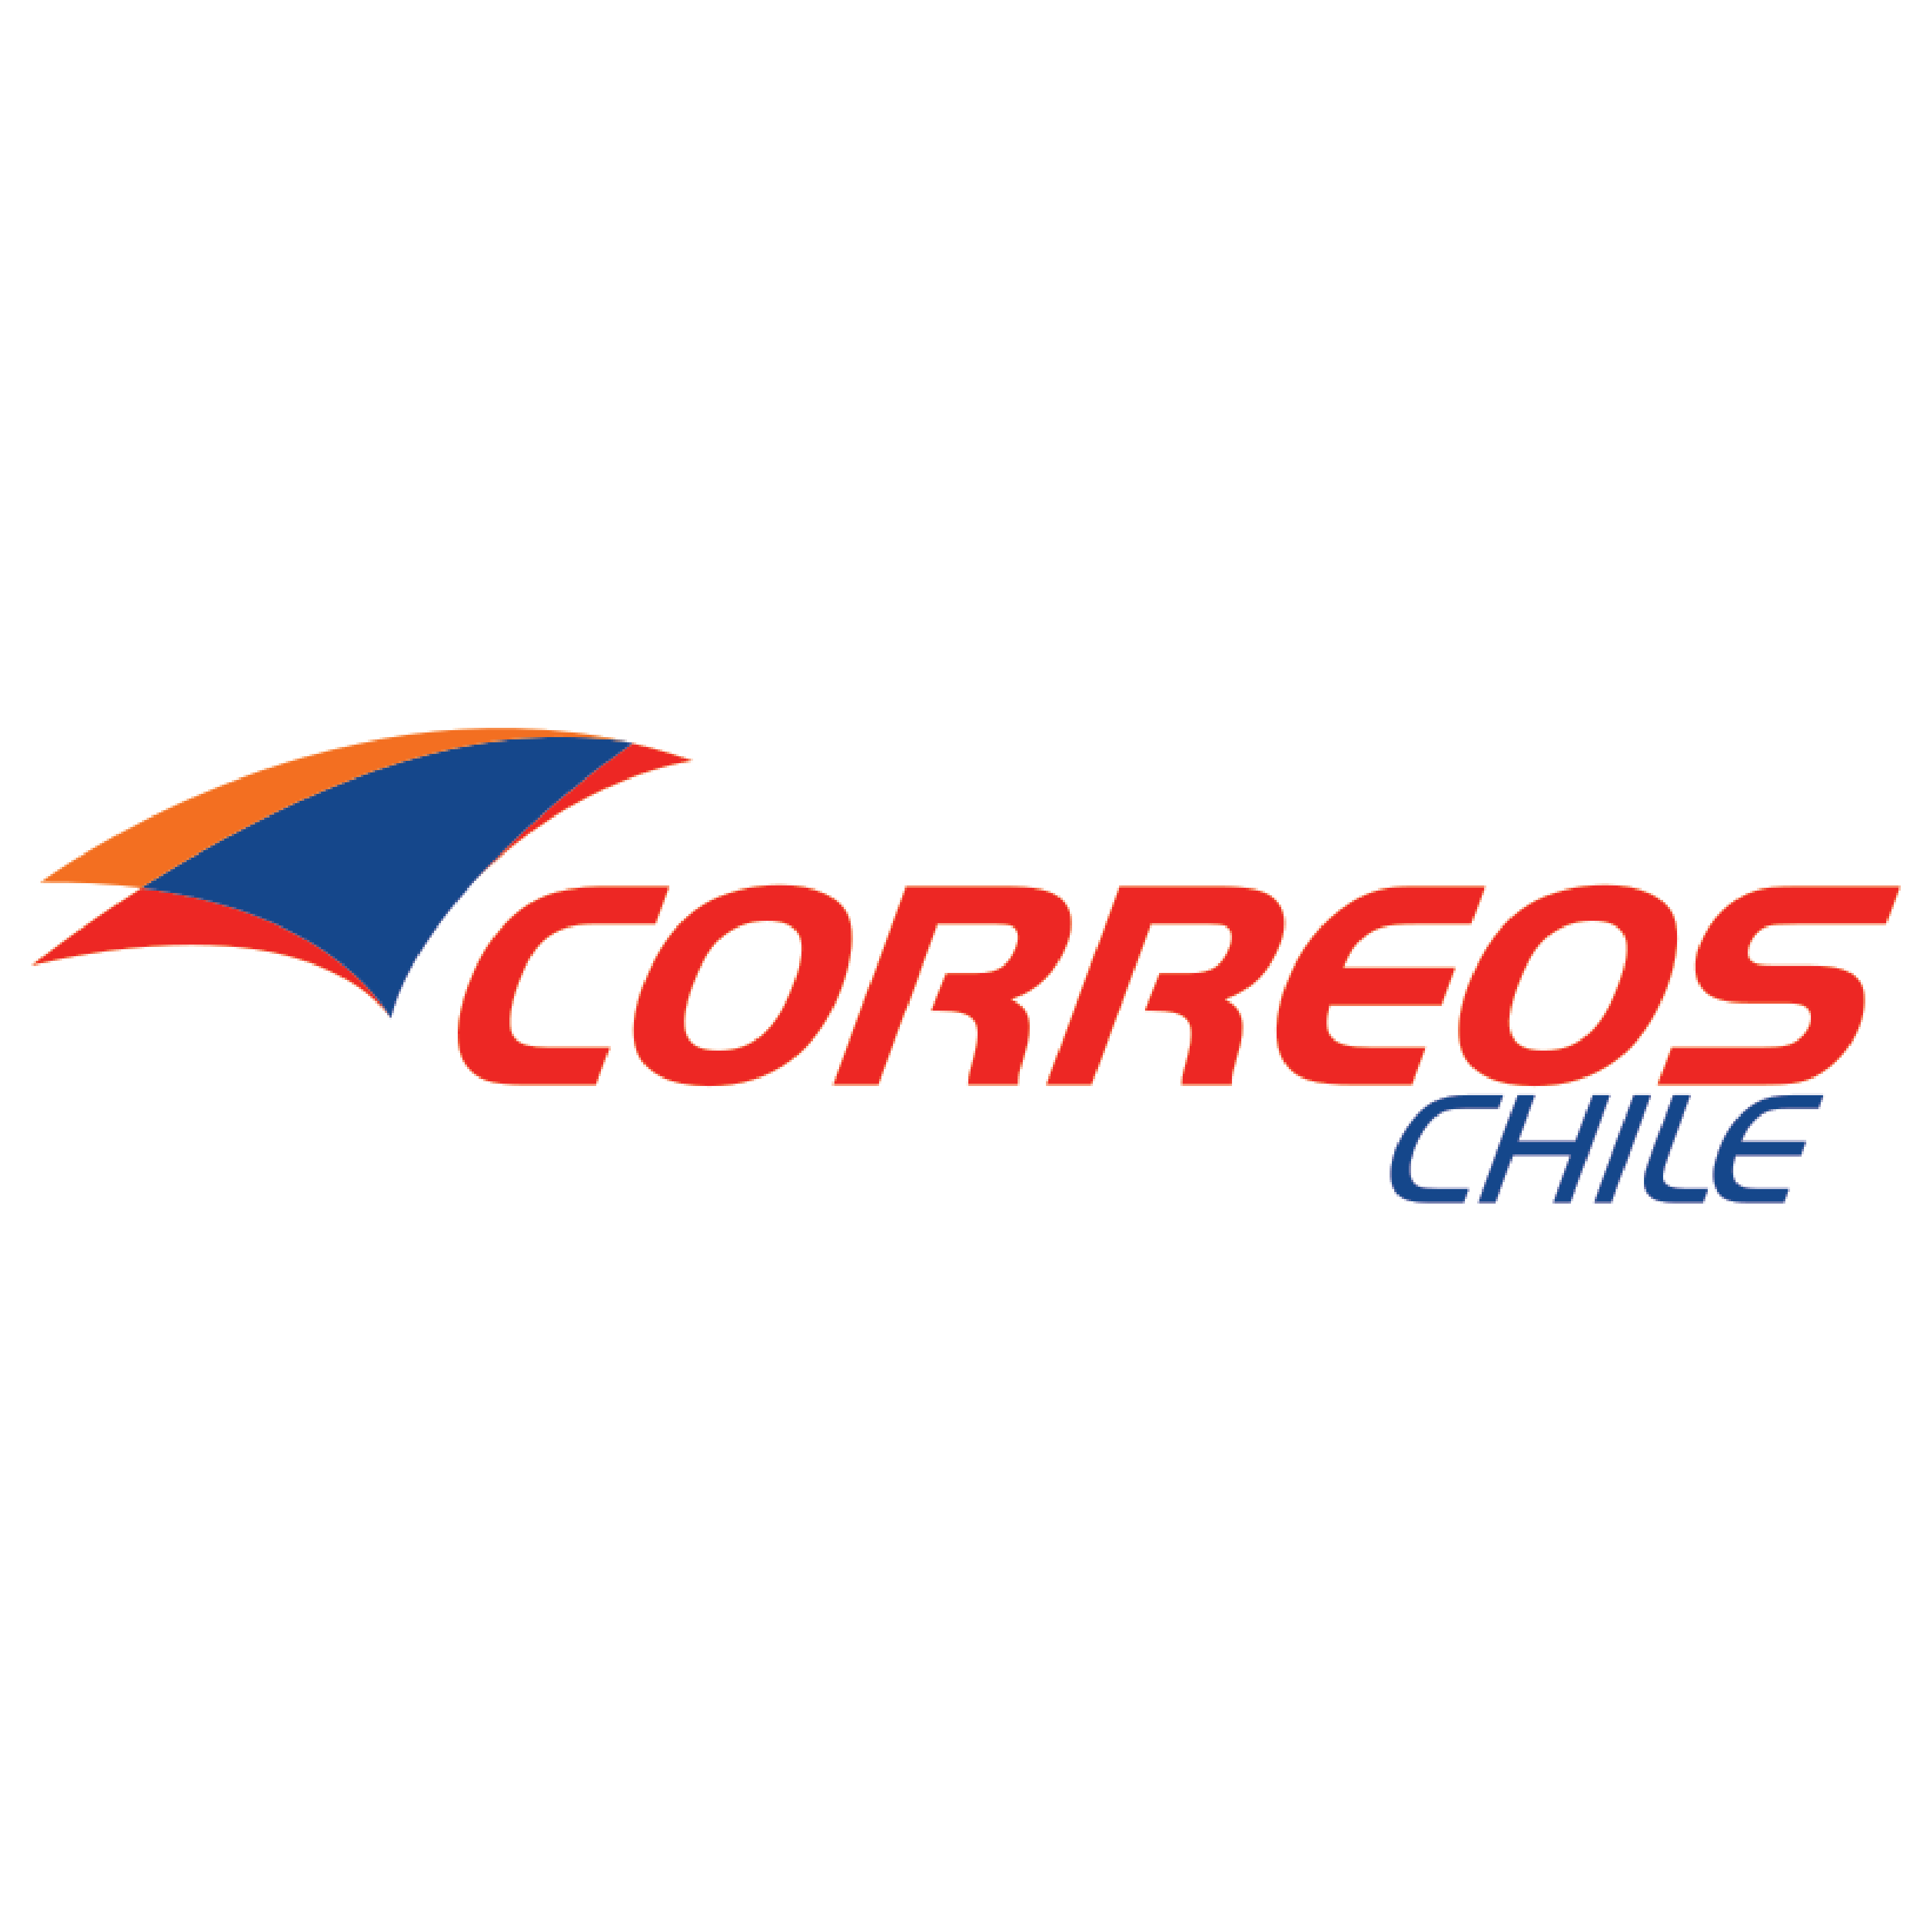 Correos Chile Shipedge Integration